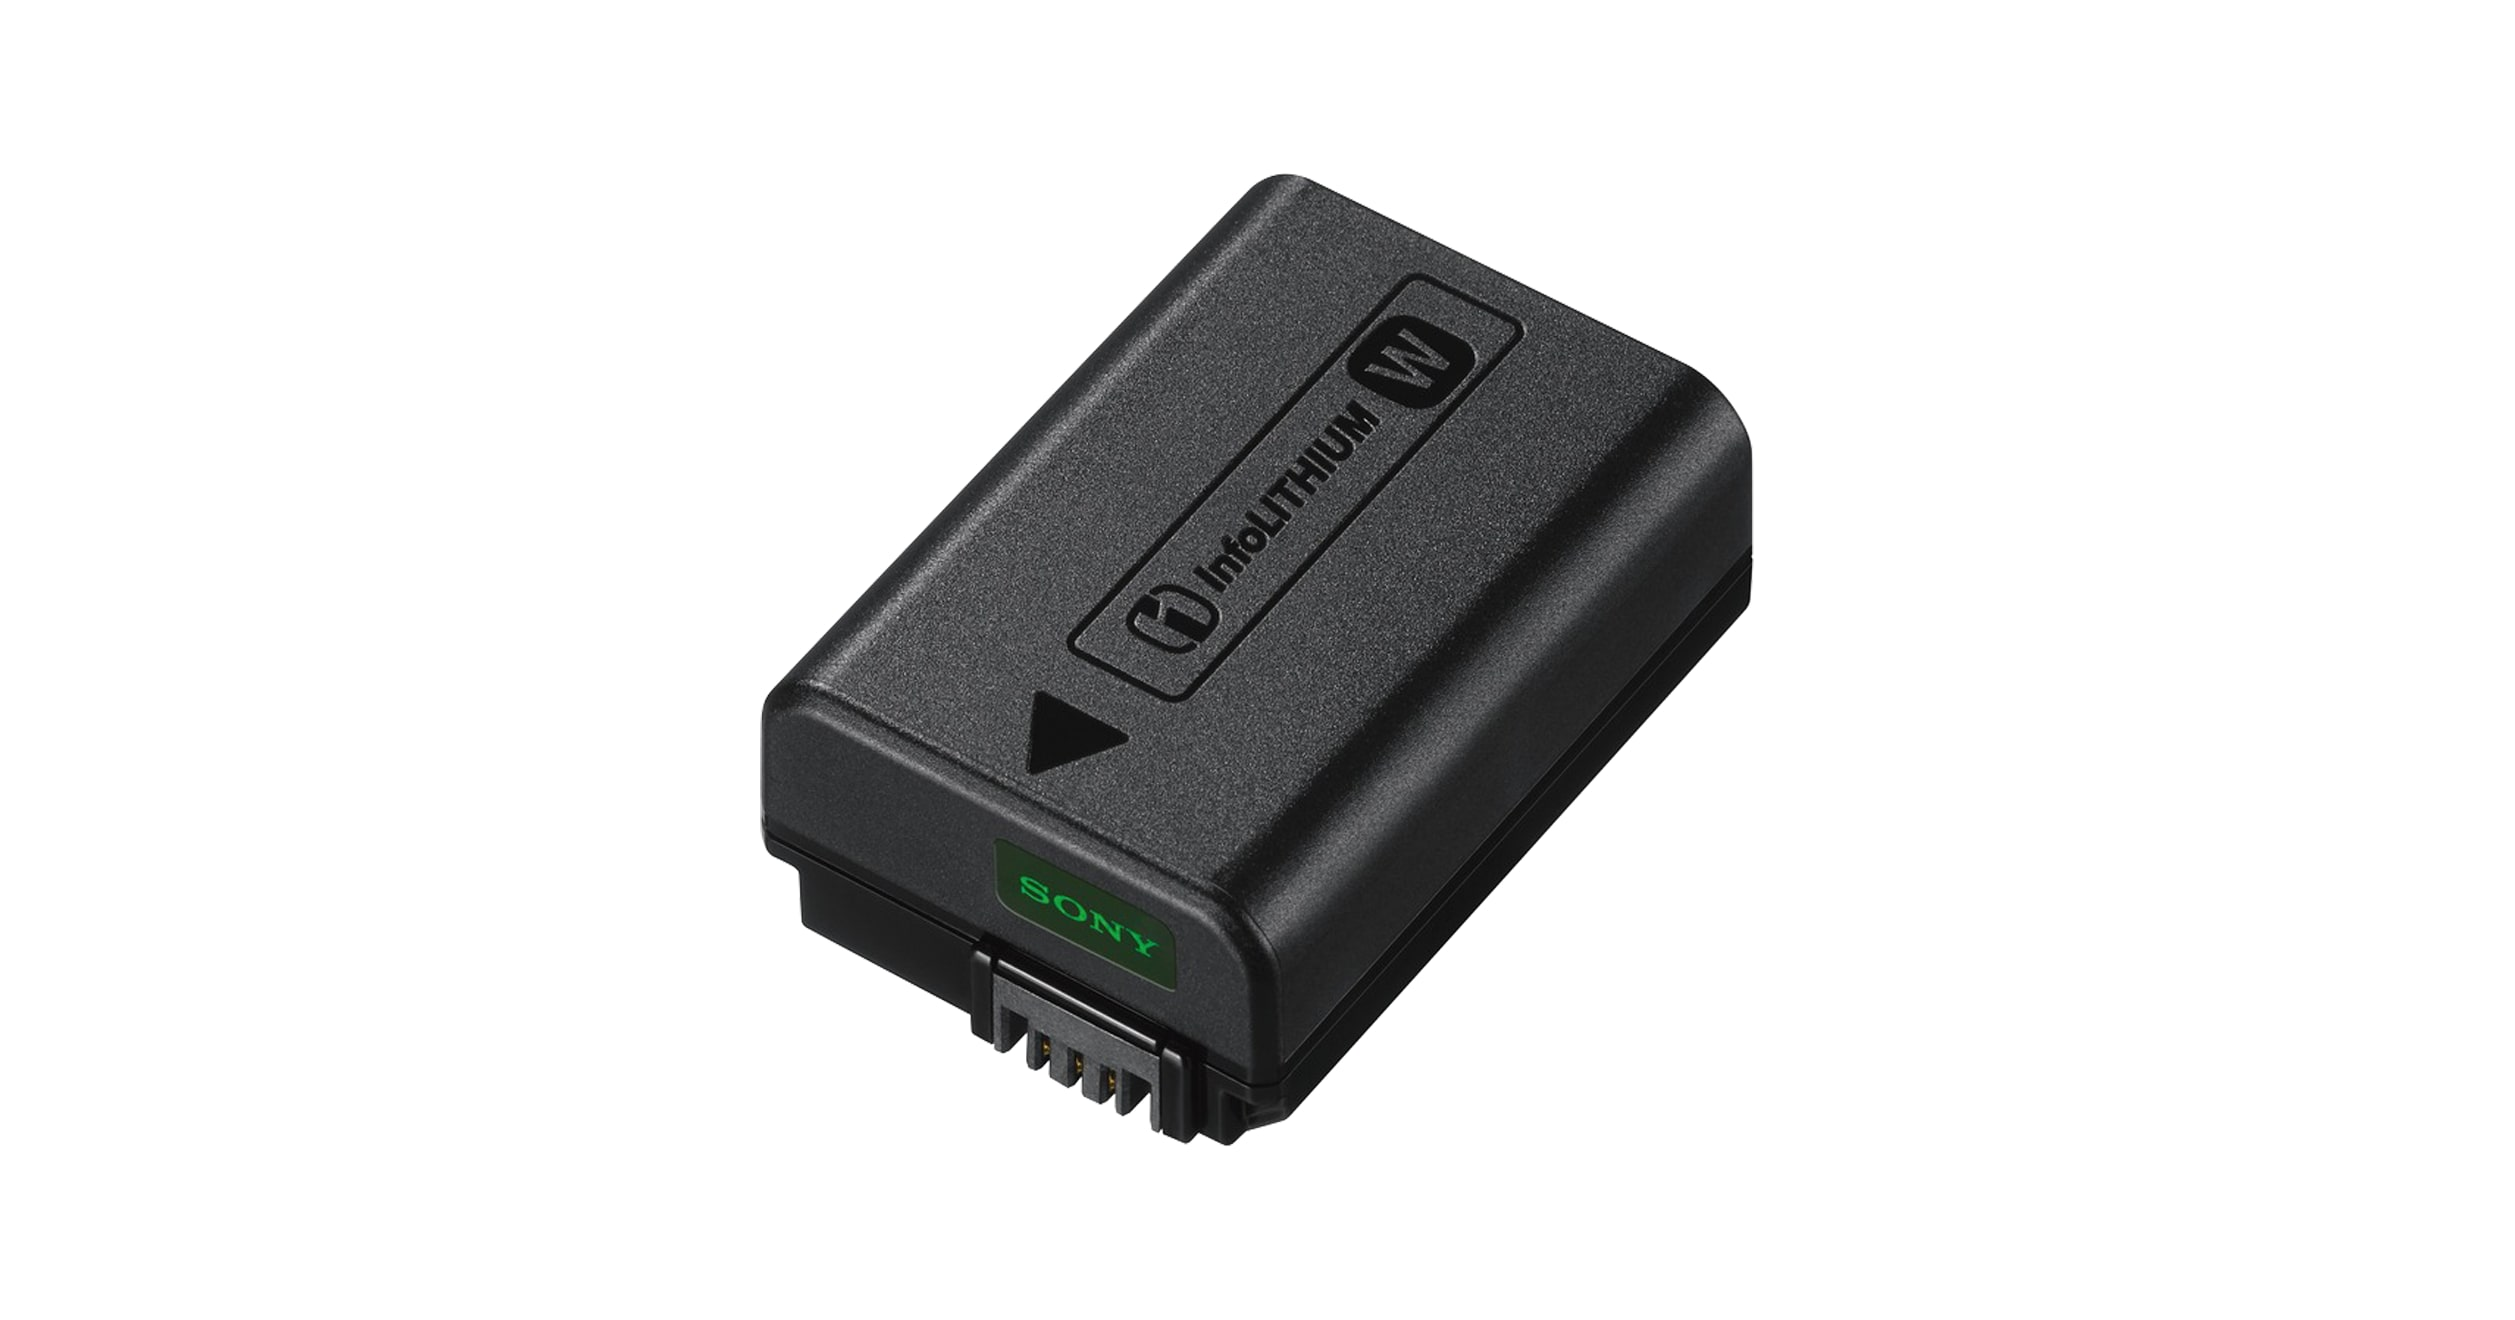 NP-FW50 W-series Rechargeable Battery Pack | NP-FW50 | Sony CA